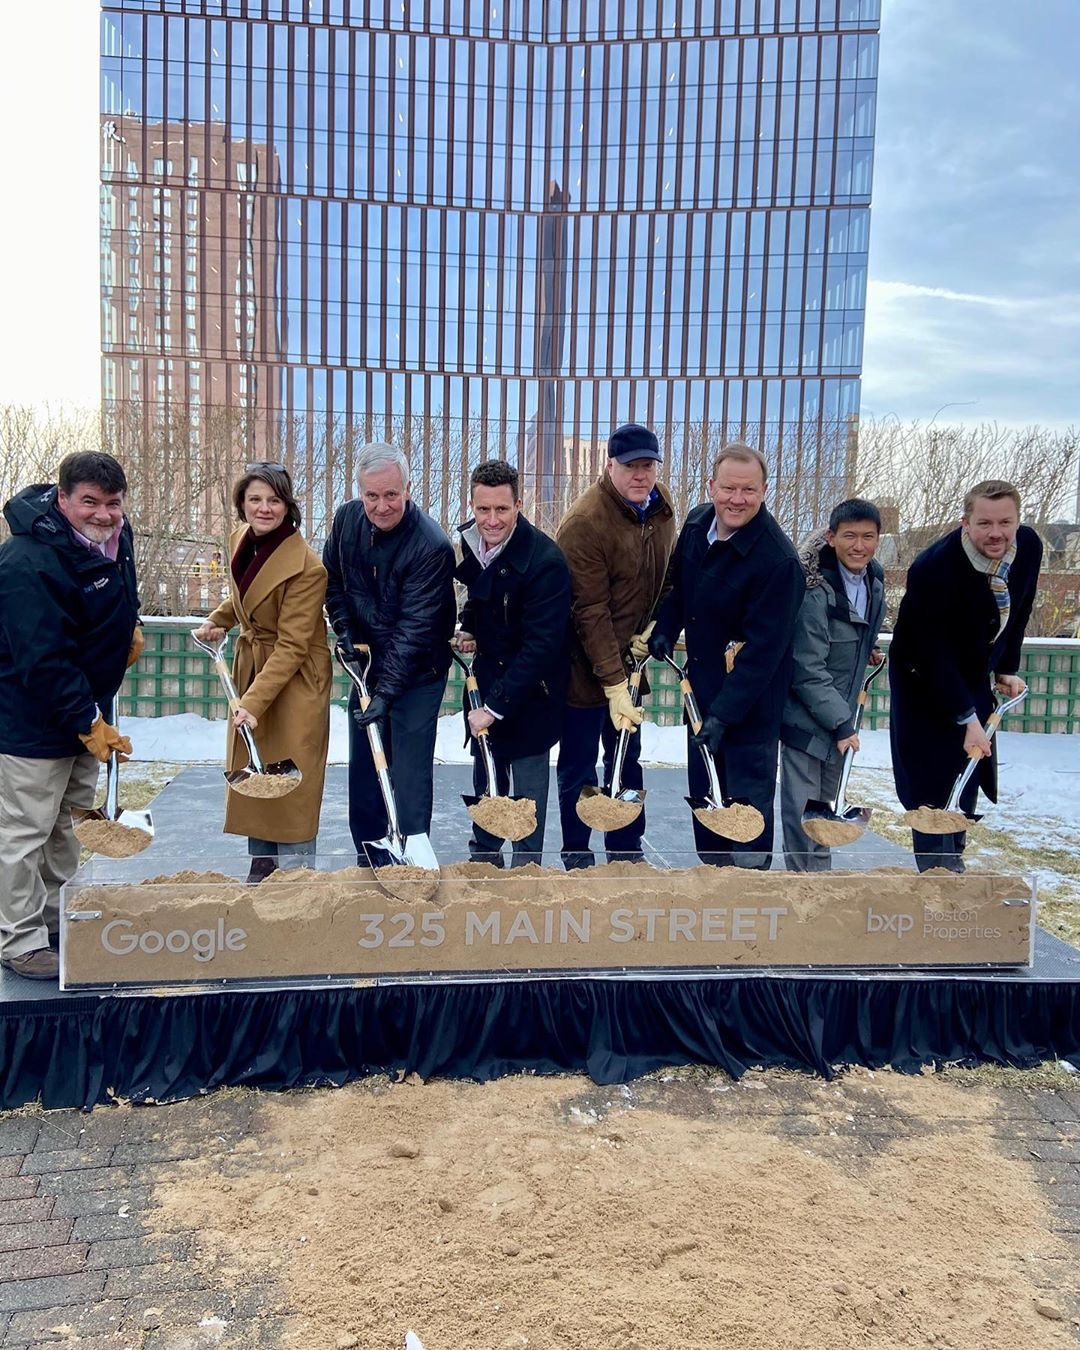 kendall square ground breaking